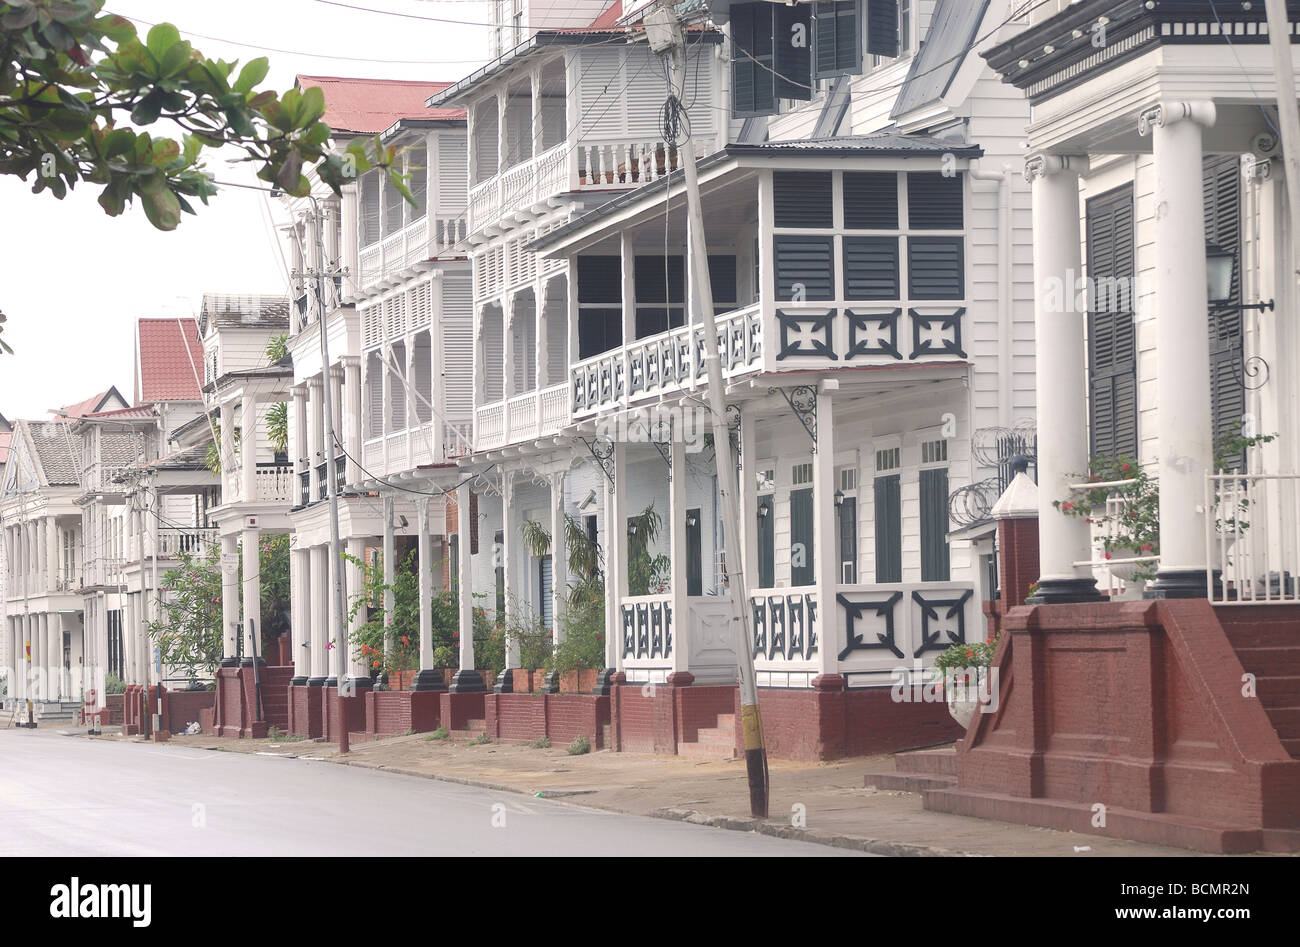 Dutch colonial street in Paramaribo, Suriname South America - Stock Image